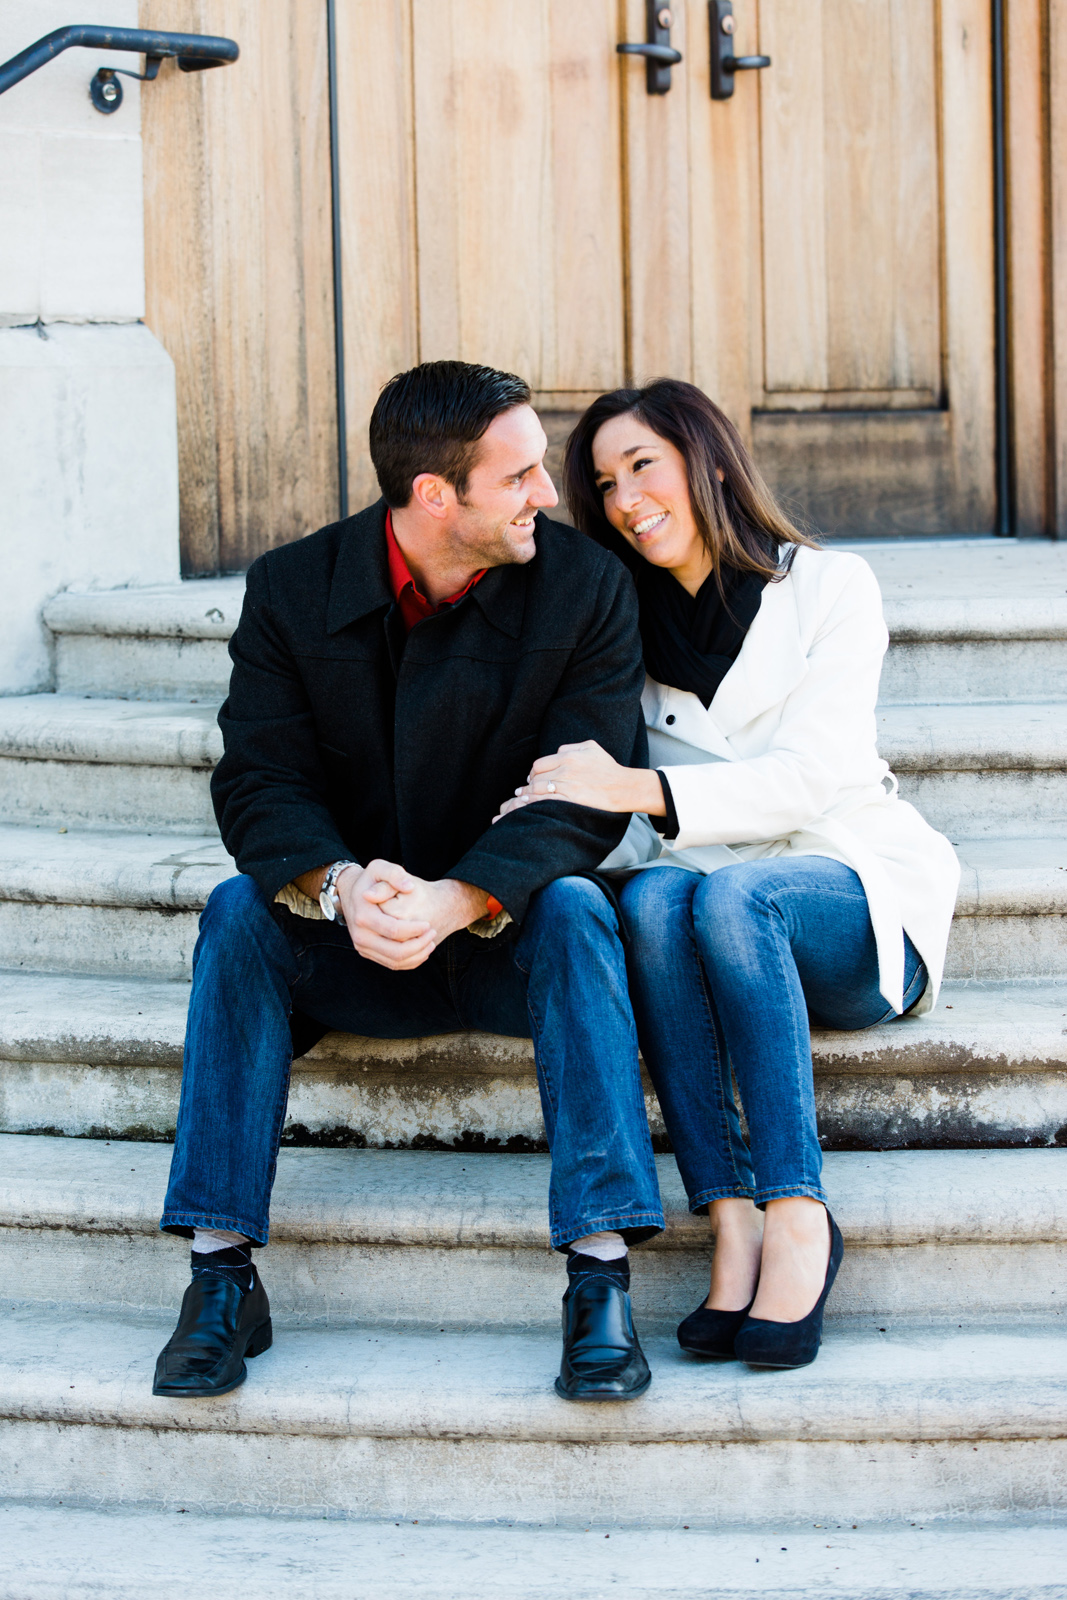 Oldani Photography-St Charles-Family Session-engagement-New Town_20141228_15580336.jpg